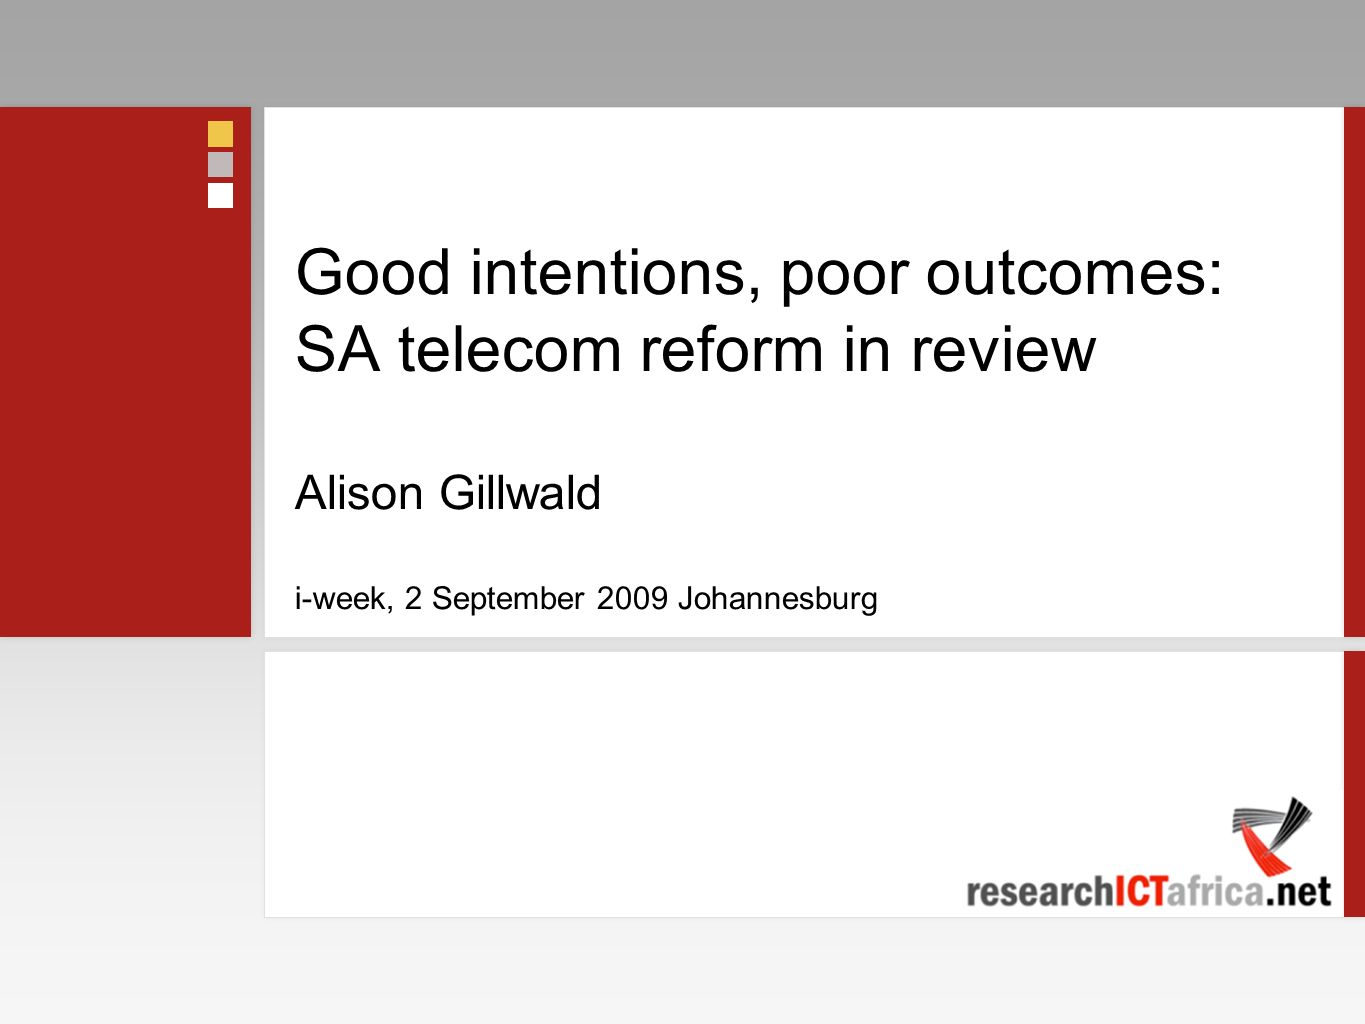 Good intentions, poor outcomes: SA telecom reform in review Alison Gillwald i-week, 2 September 2009 Johannesburg